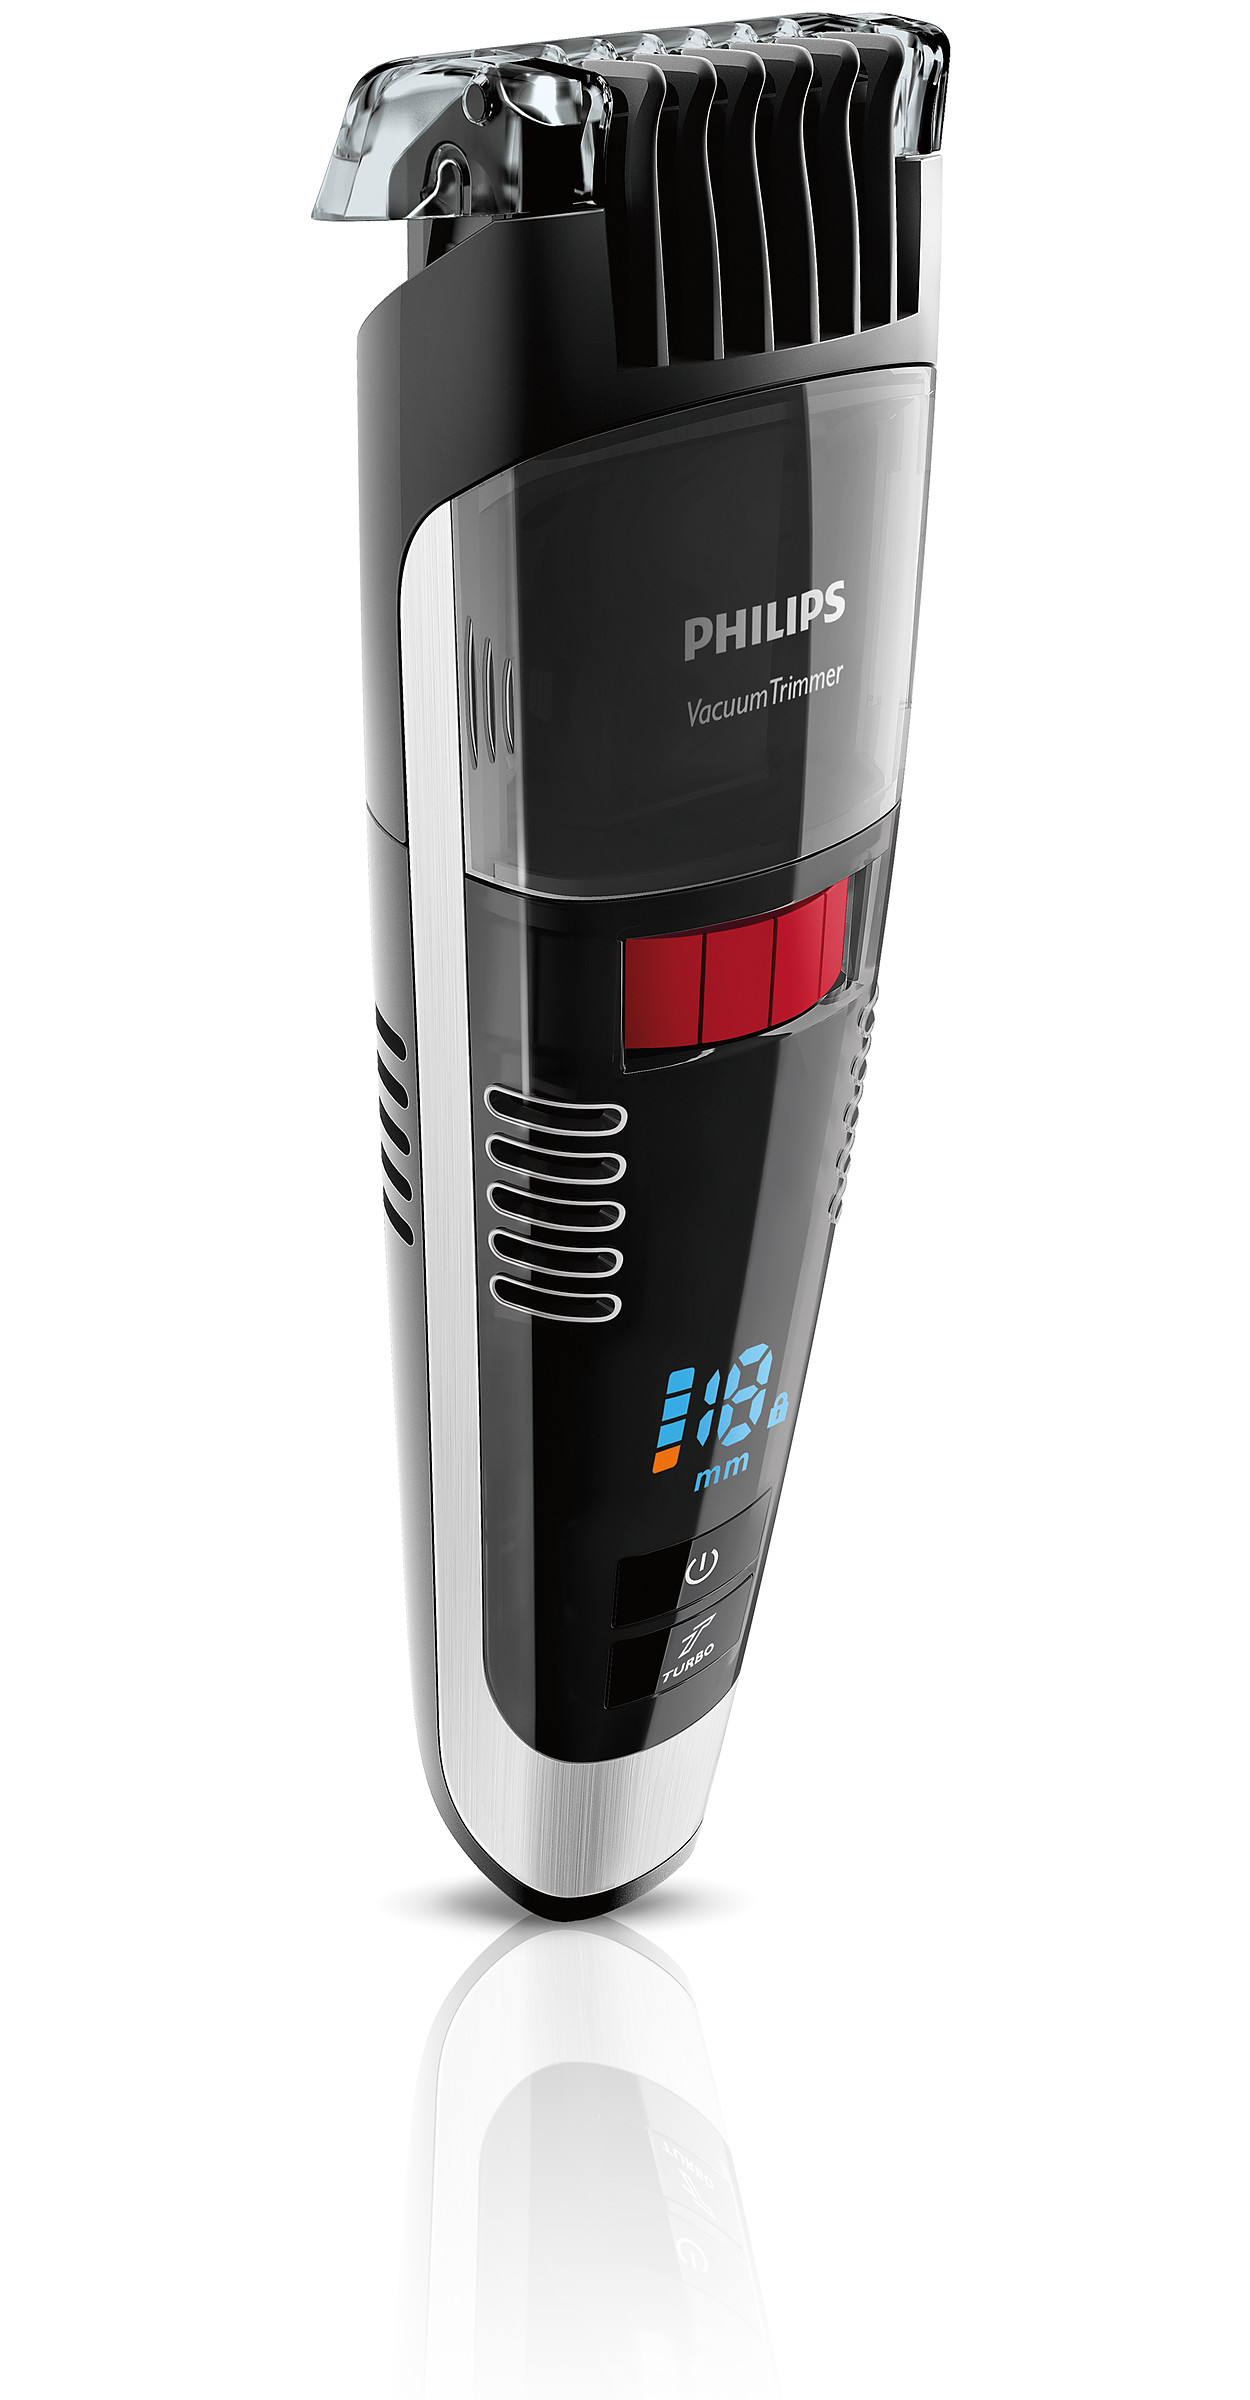 buy the philips beardtrimmer series 7000 vacuum stubble and beard trimmer bt7085 32. Black Bedroom Furniture Sets. Home Design Ideas